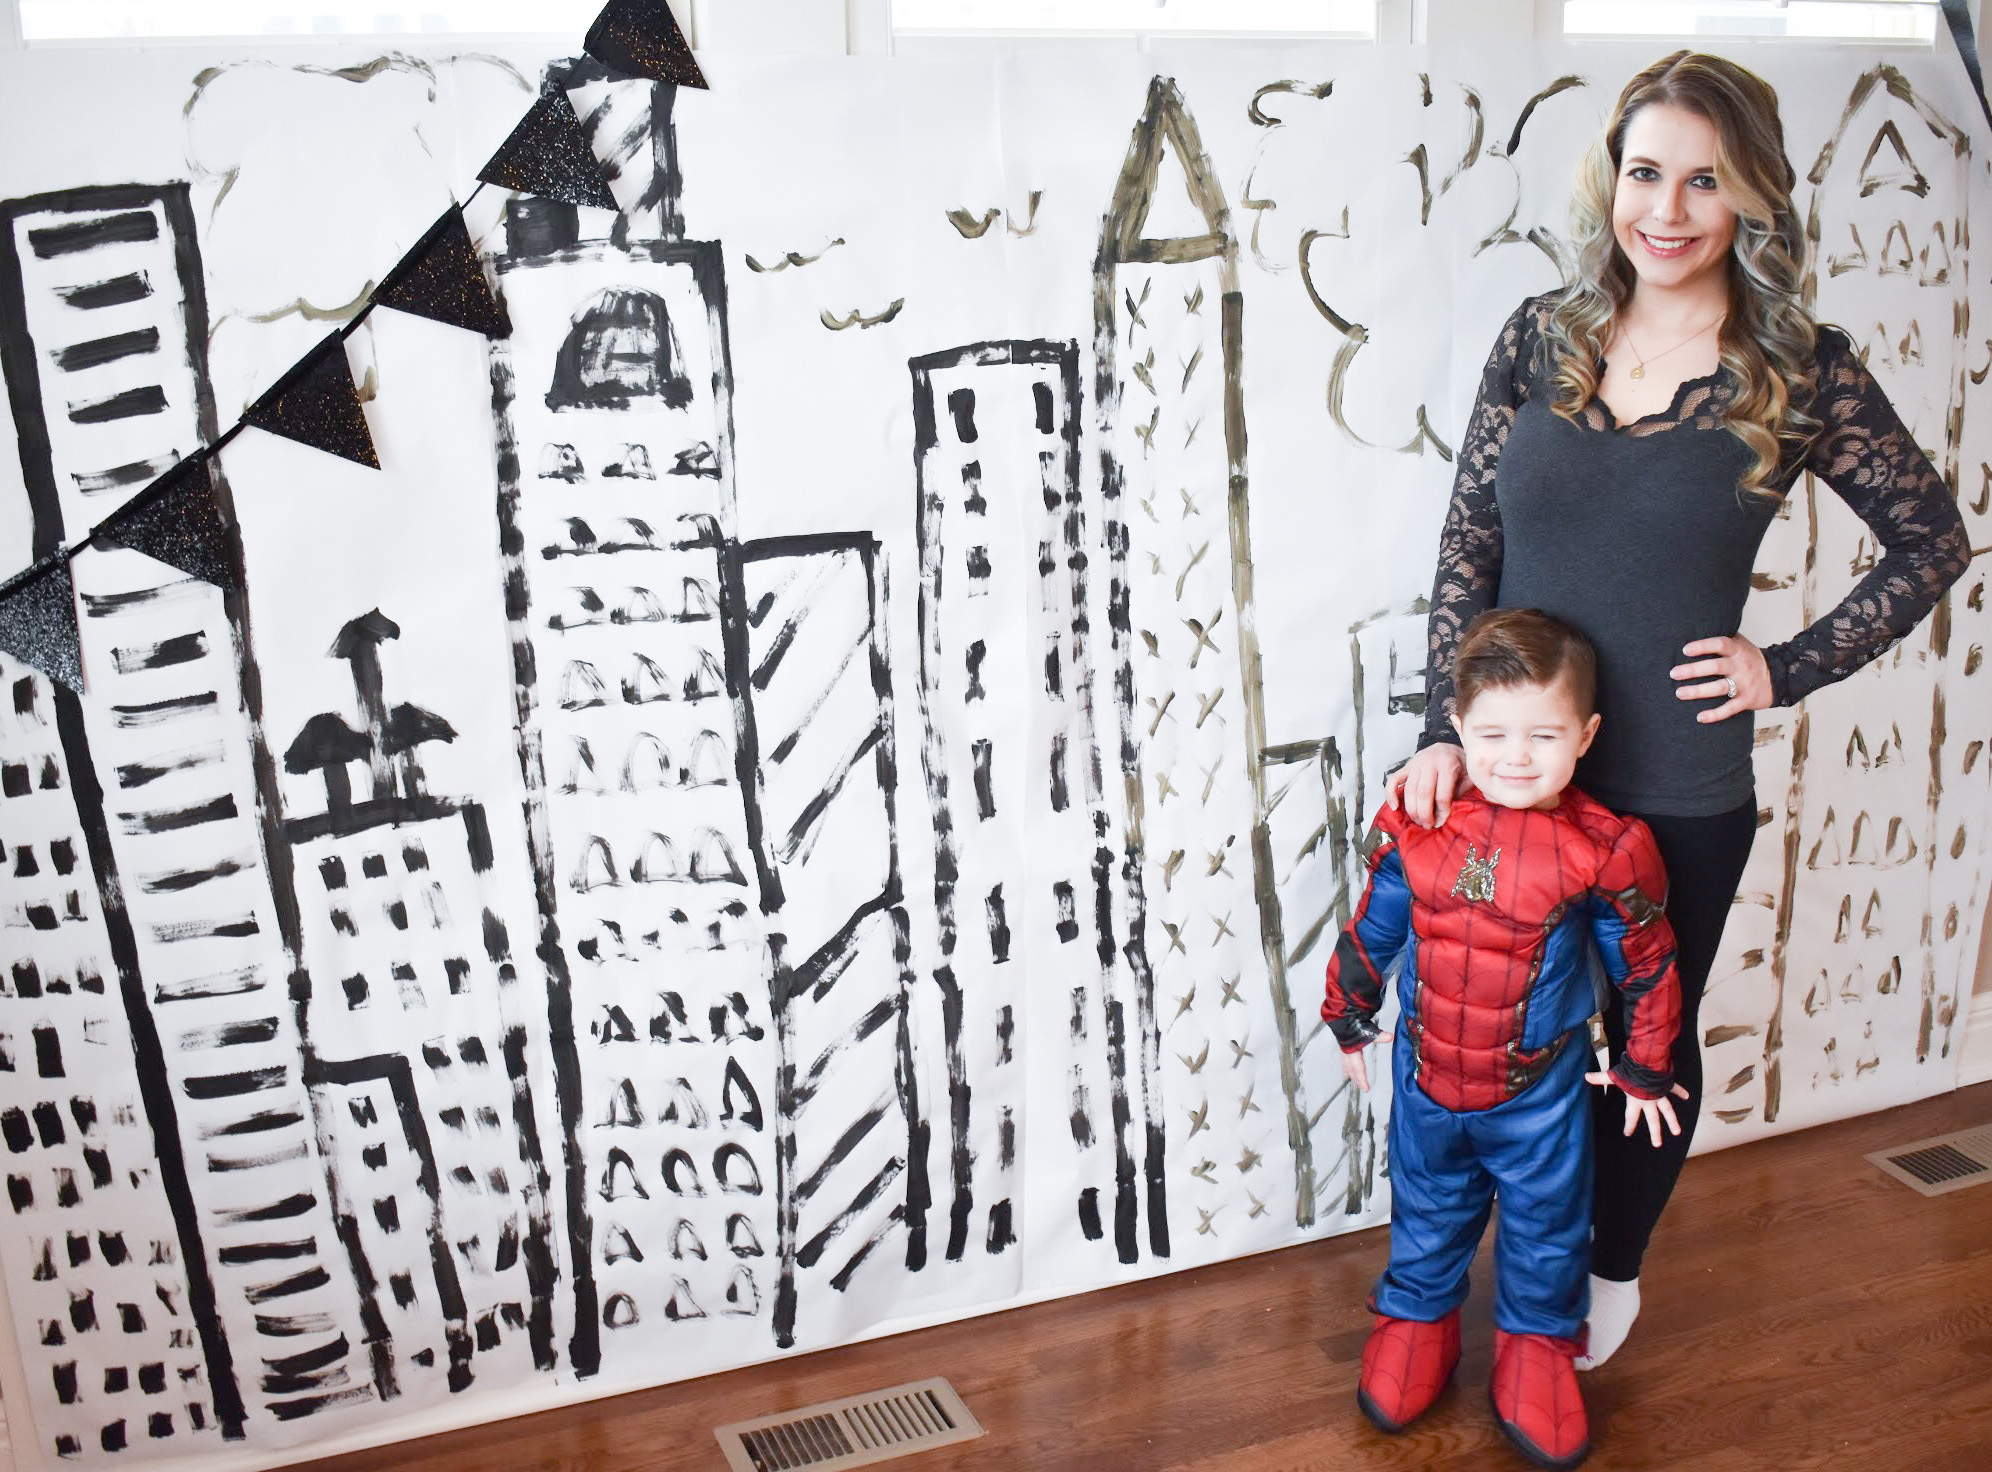 Spiderman Birthday Party - Spider-Man Party Ideas: Looking for Spiderman birthday party ideas? I pulled together some of my favorite Spider-Man birthday party ideas to create this classy Spiderman party for my favorite 3-year-old! #BirthdayParty #PartyIdeas #Spiderman #Spider-Man